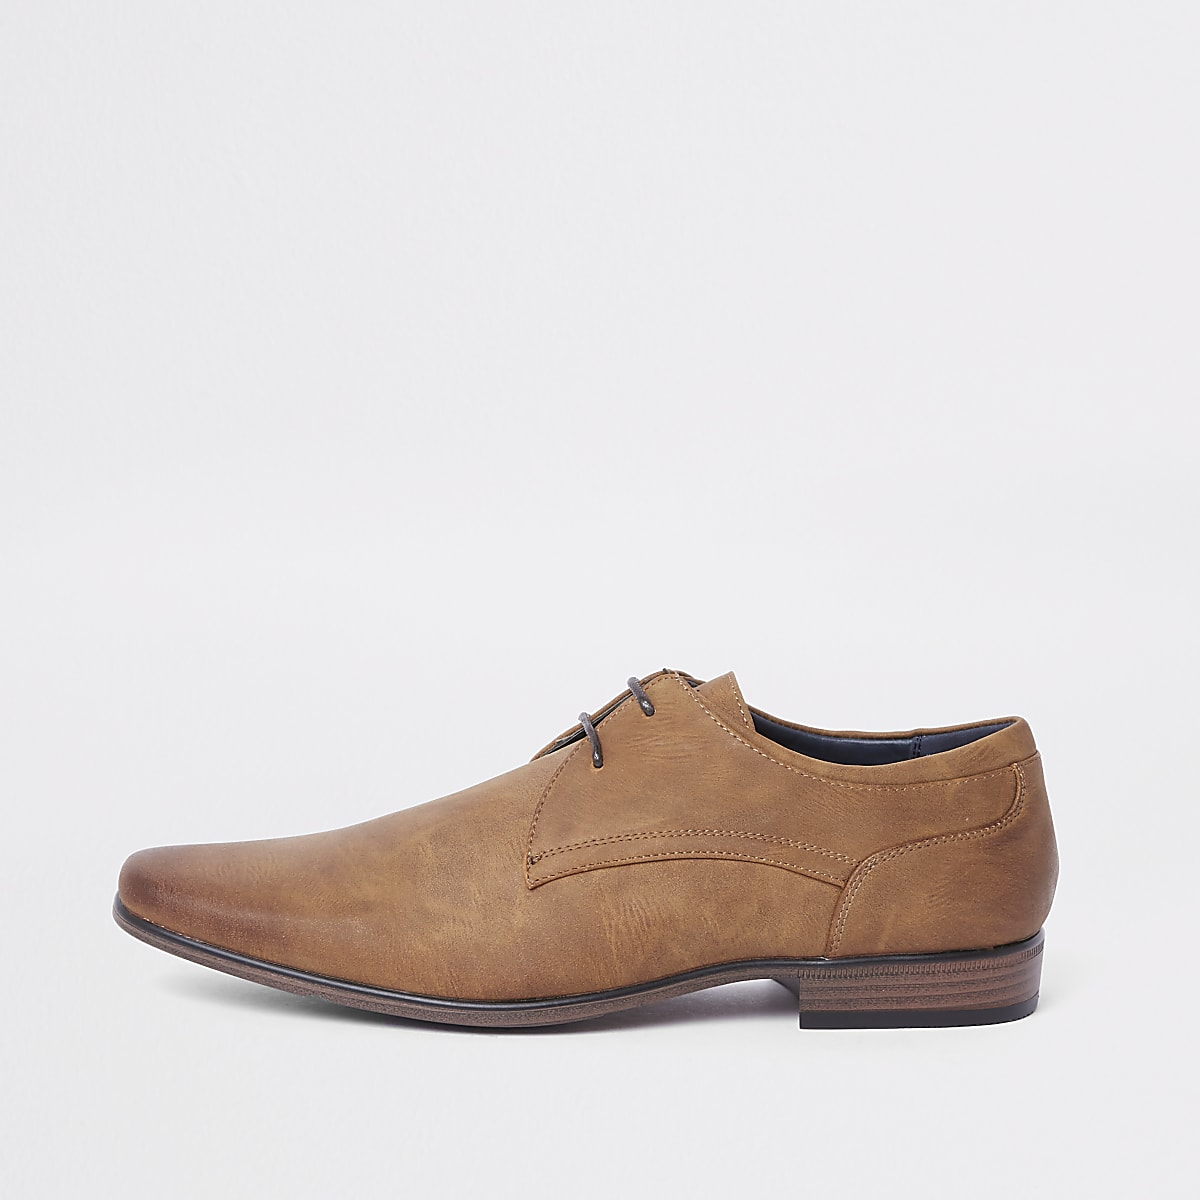 Tan lace-up formal shoe